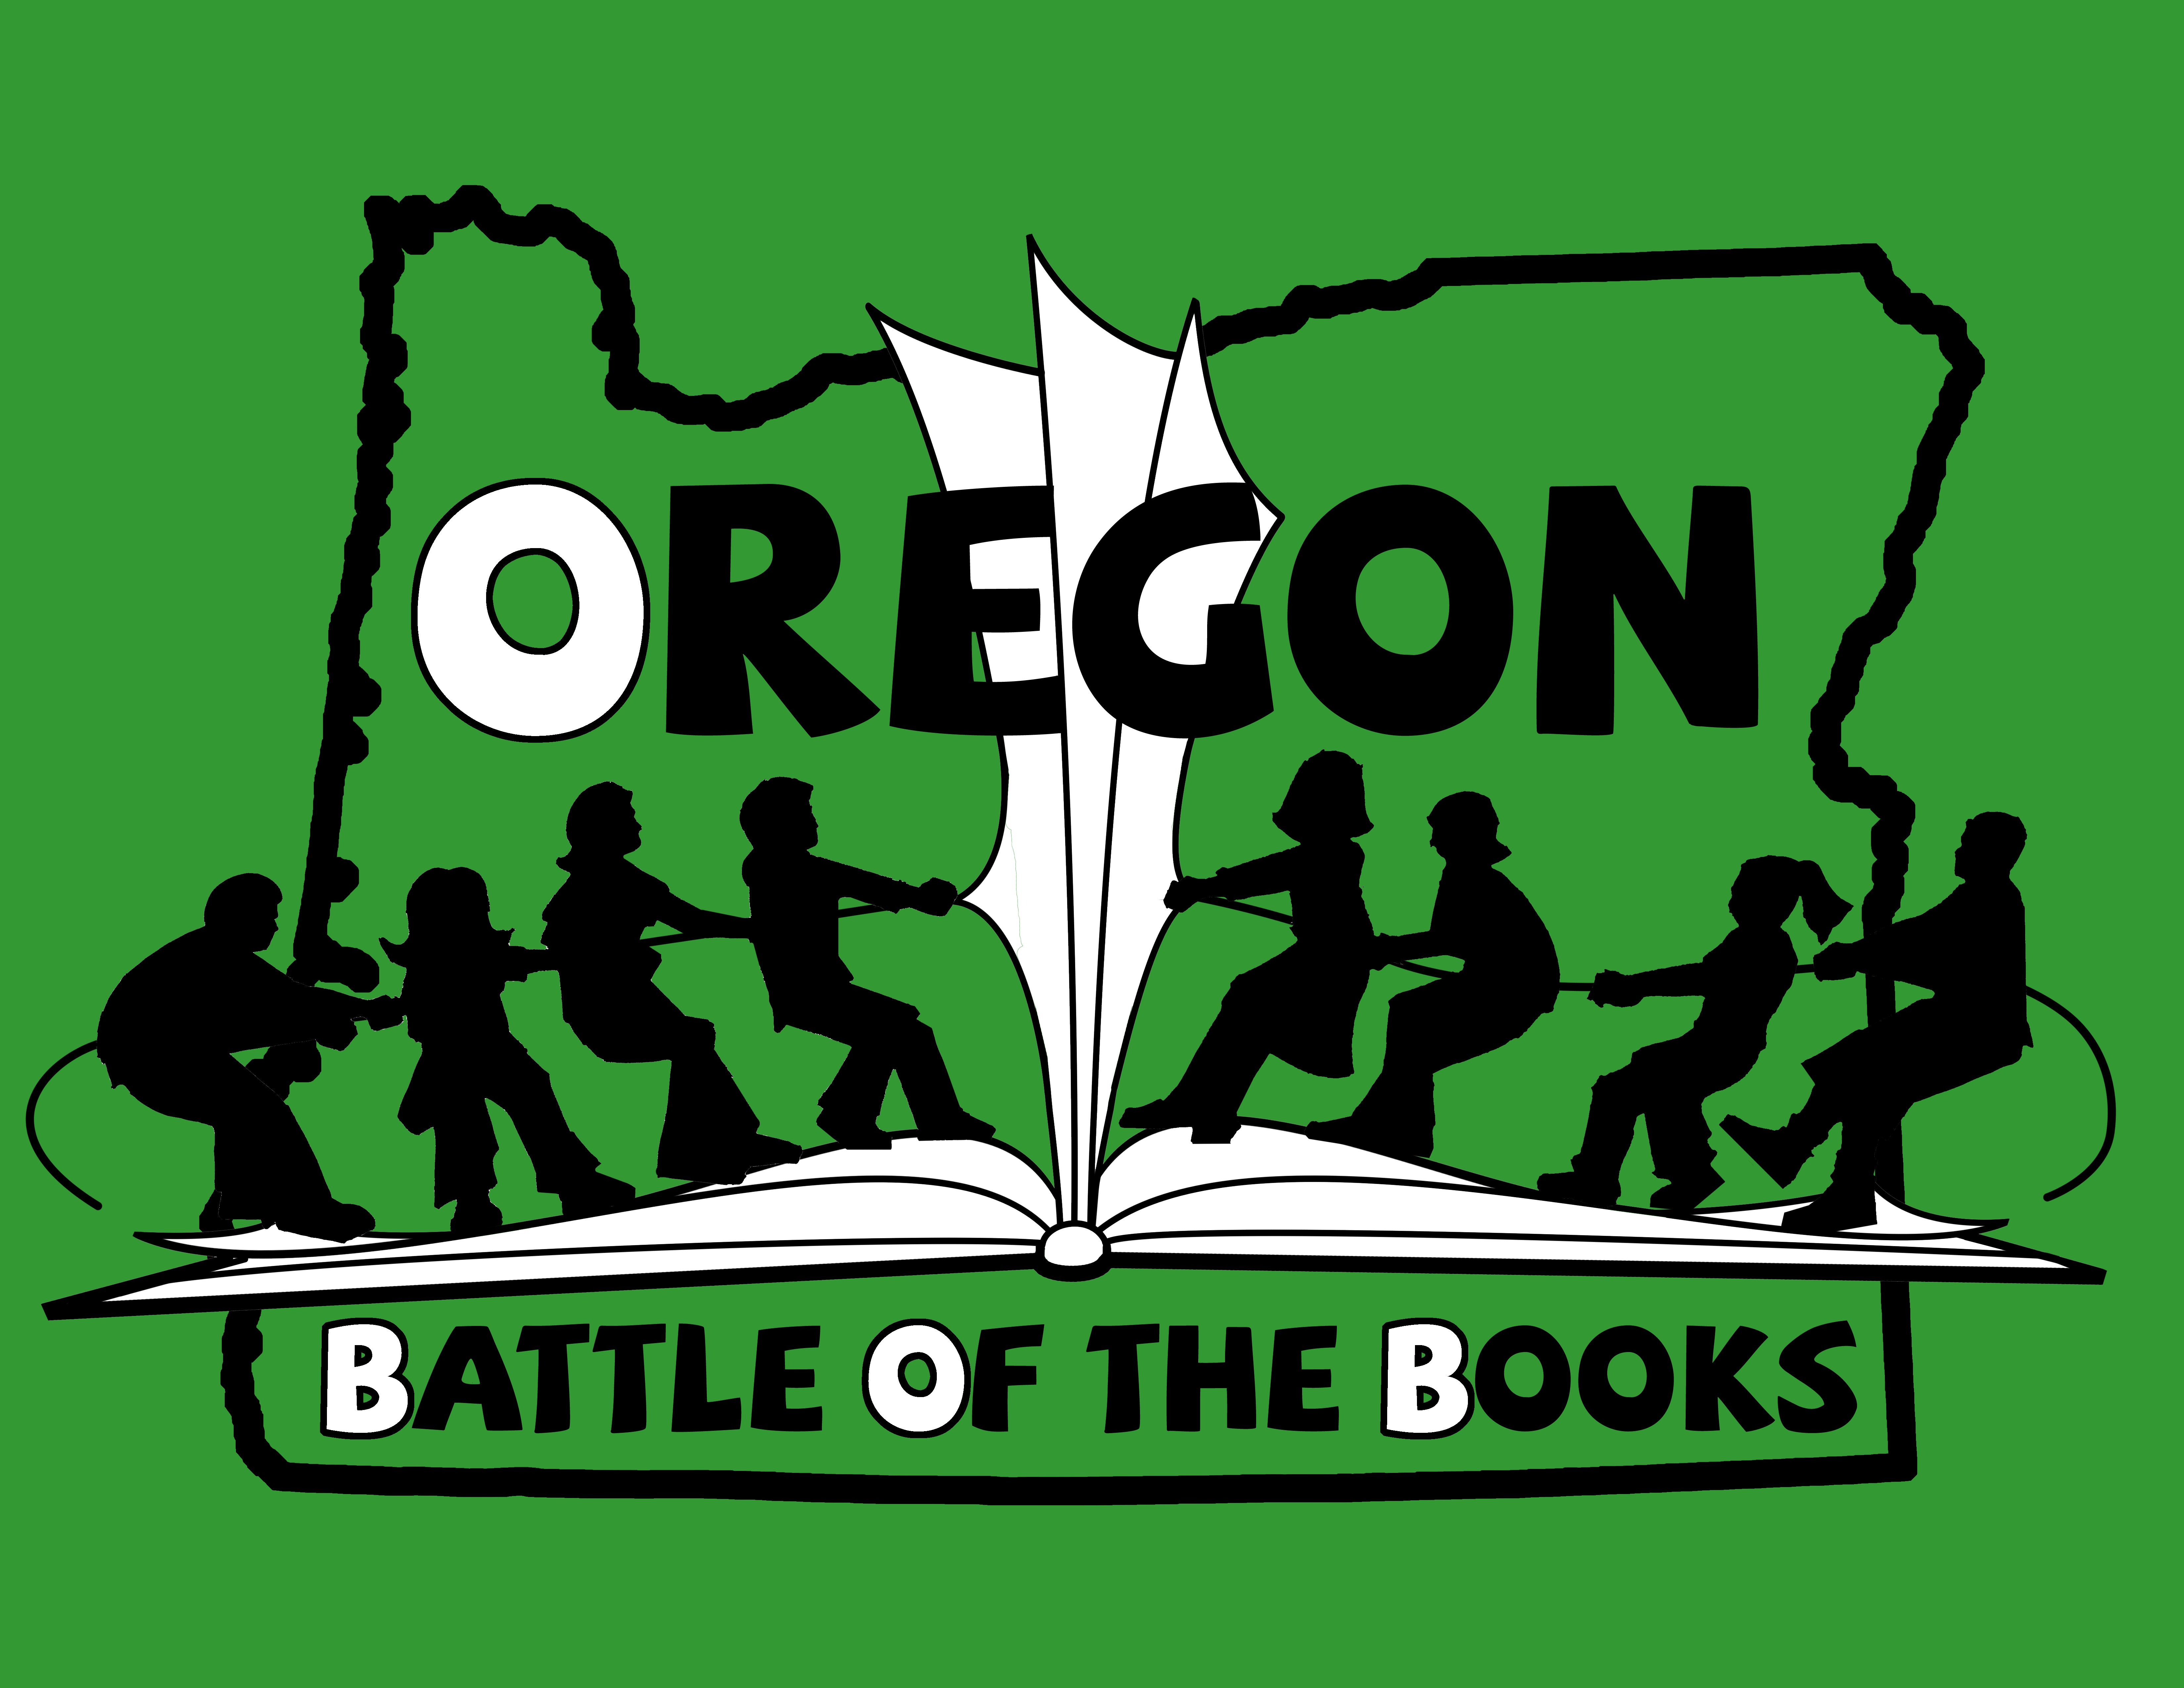 Oregon Battle of the Books Comes to HCCS